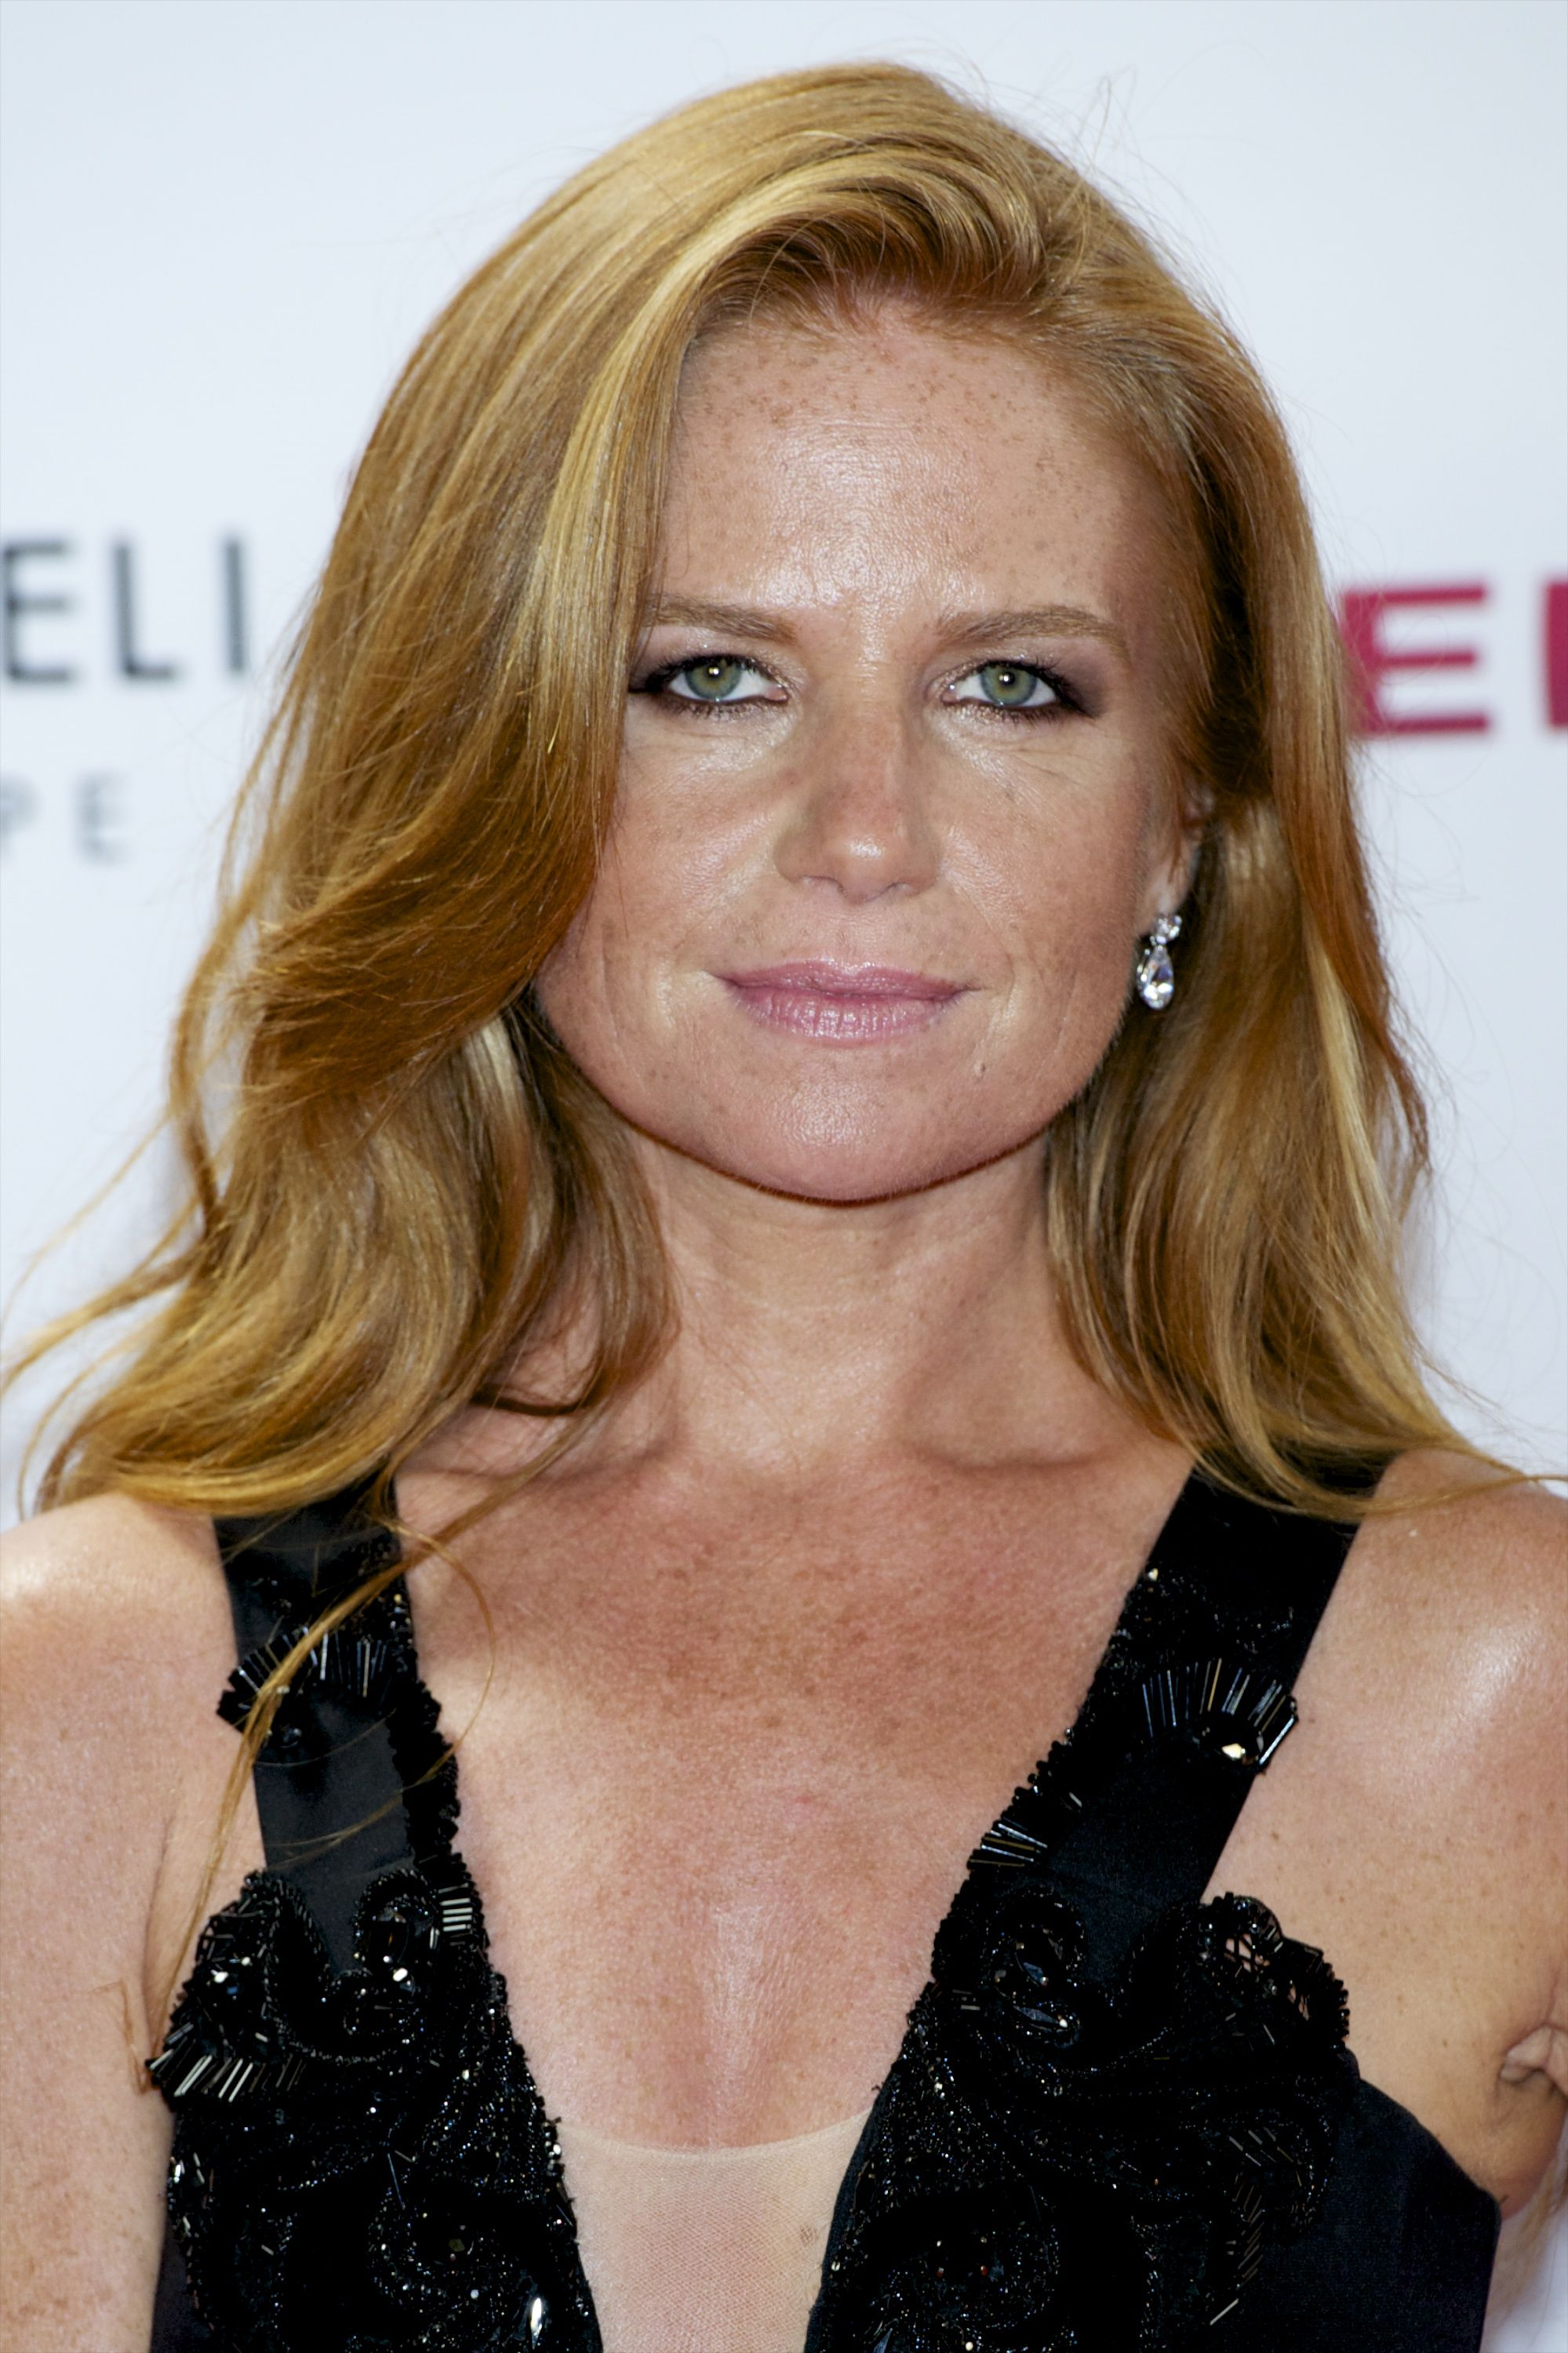 Patsy Palmer (born 1972) nude (36 photos), Tits, Hot, Boobs, swimsuit 2020